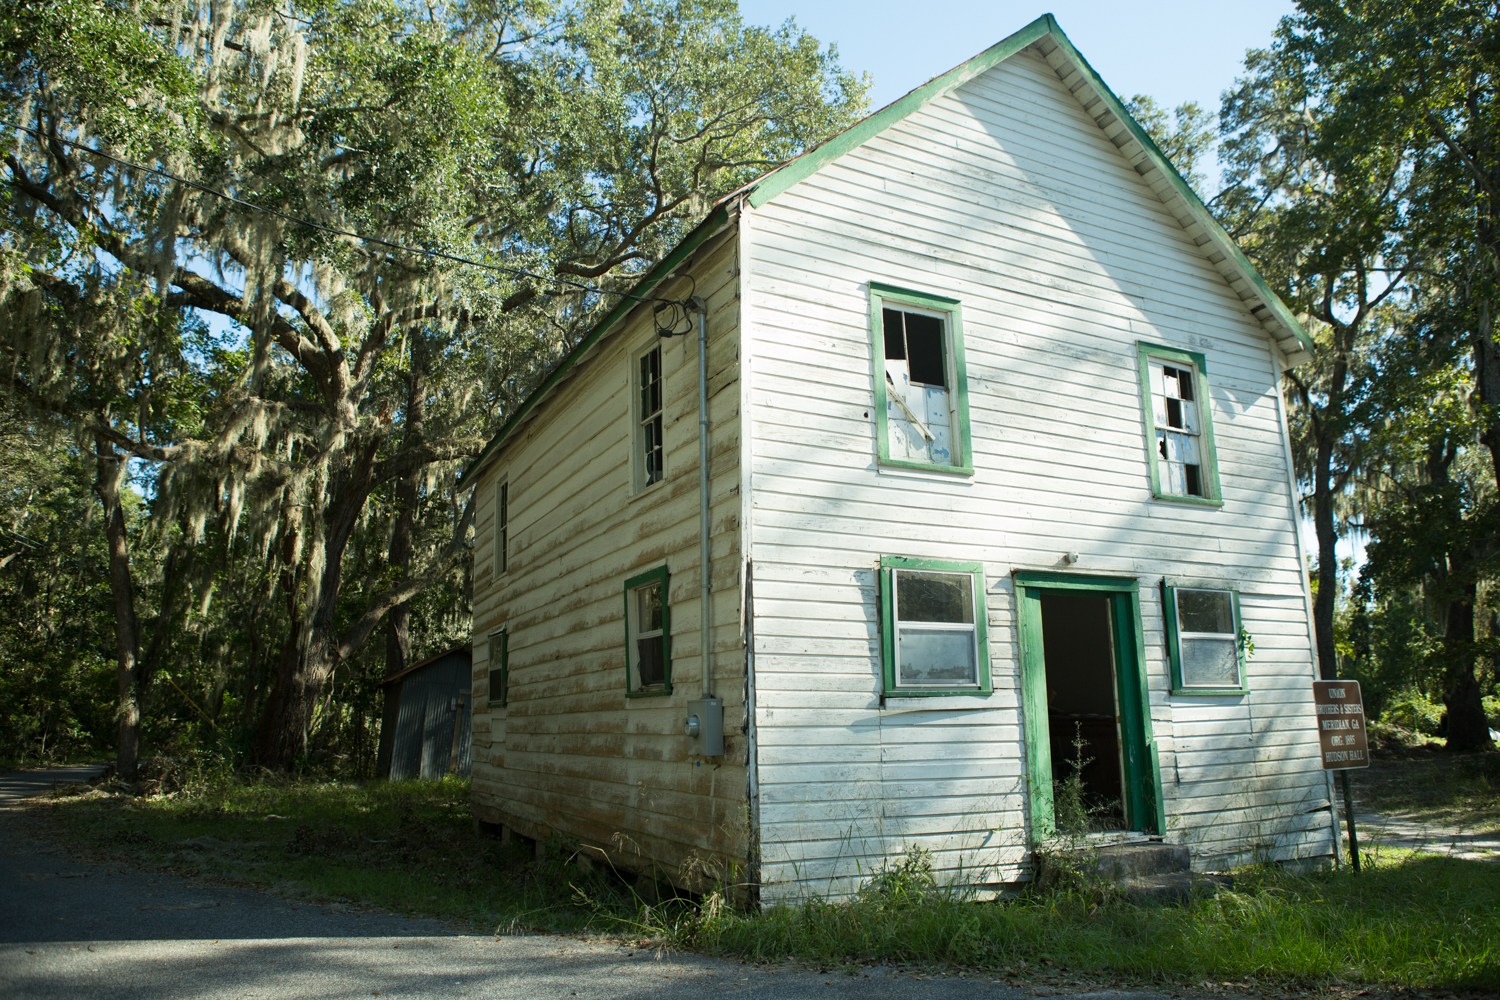 This now-abandoned building was established around 1900 to replace the original mission lodge of the Union Brothers and Sisters from the 1880s. It has been a schoolhouse, hosted secret meetings, and been a base for the Hudson Home Society, which financed funeral services for African-American locals in McIntosh County.